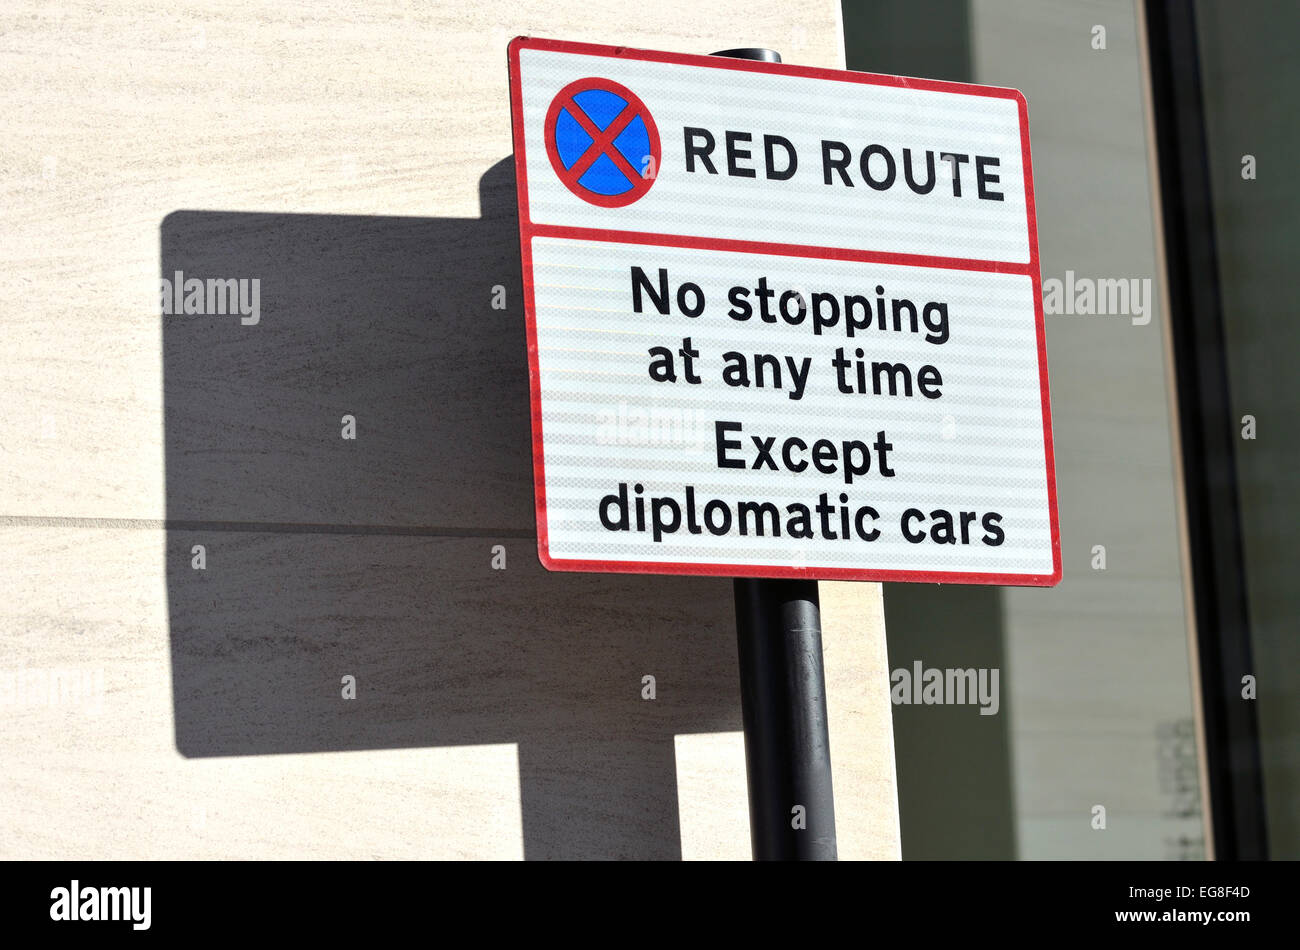 London, England, UK. Red route sign in Farringdon Road - Stock Image